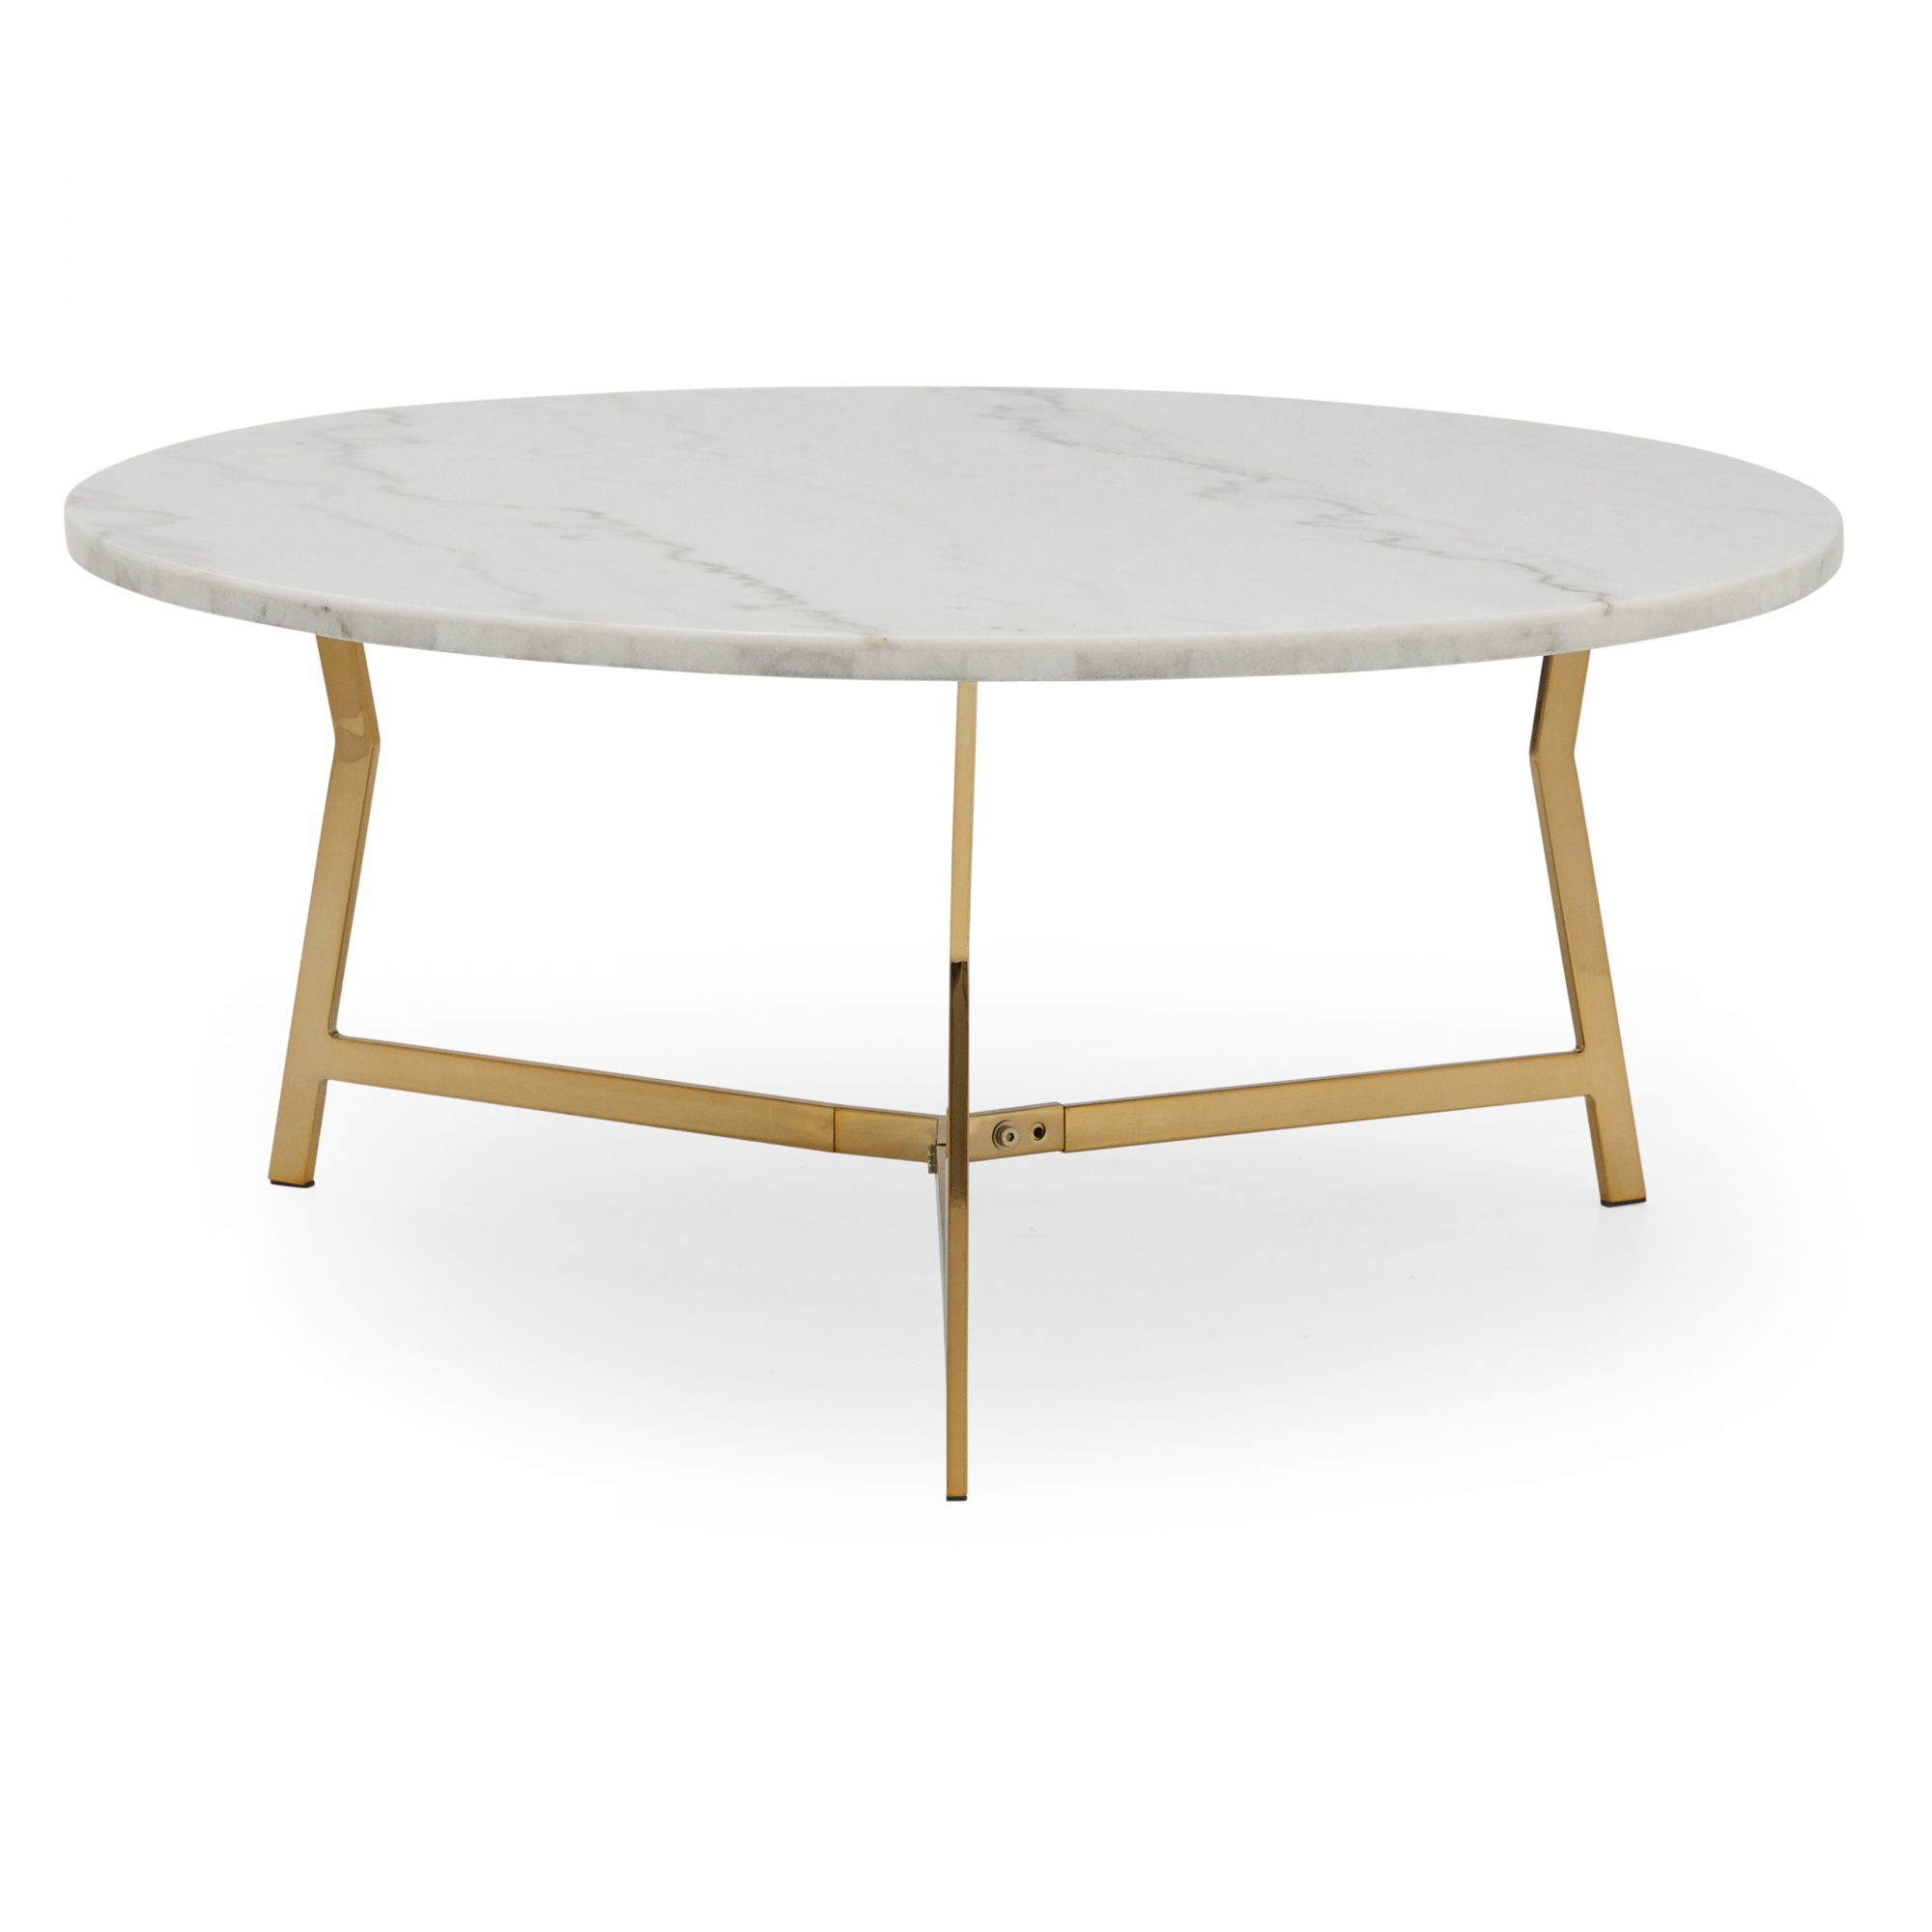 Walmart New Home Collection: MoDRN Glam Lena Geo Base Coffee Table